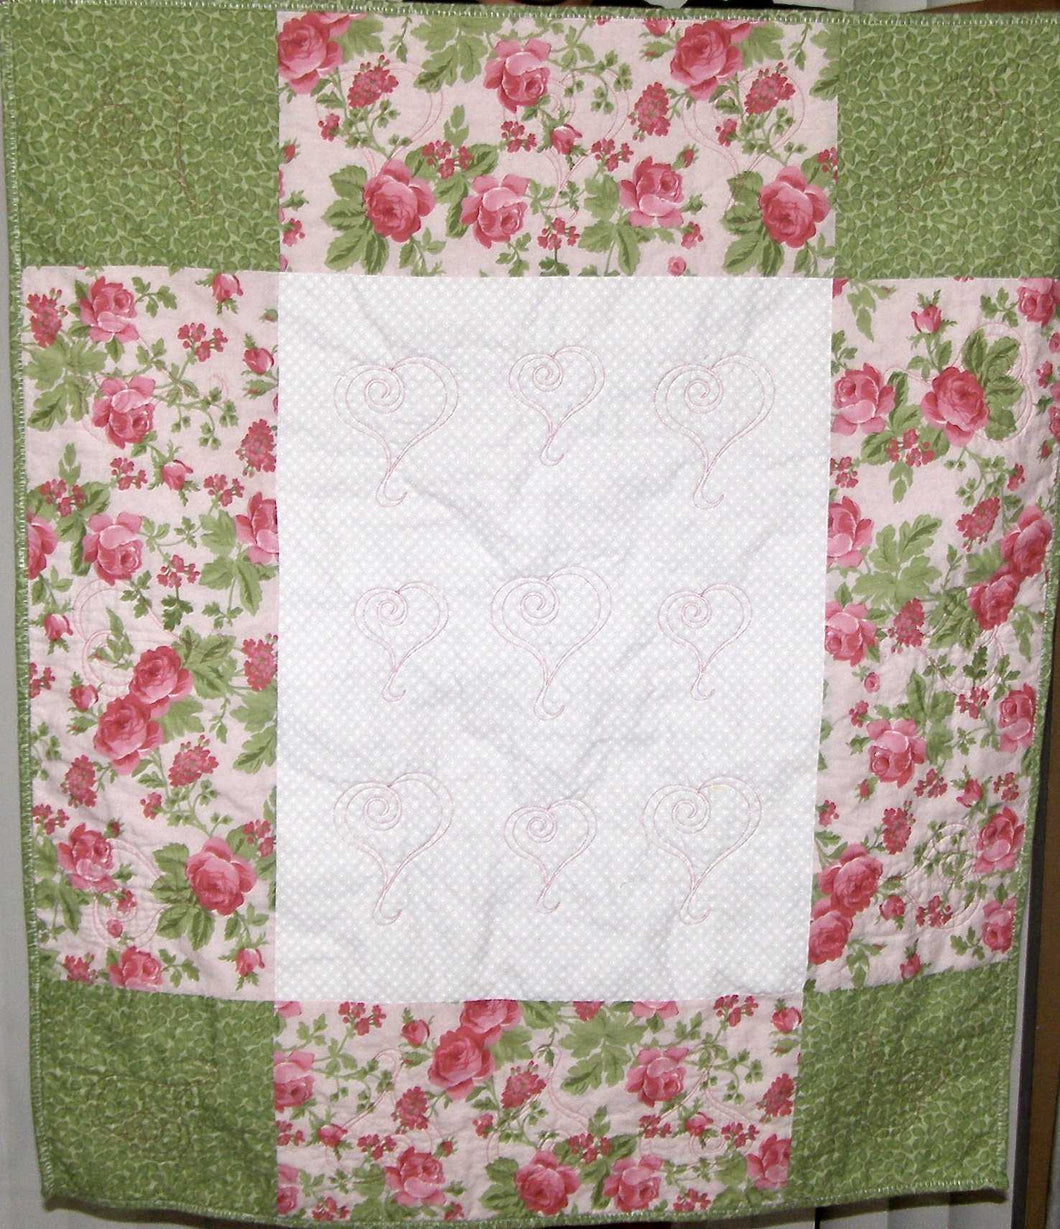 Pink Green White Floral Heart Quilting Crib Quilt Toddler Infant Adult Lap Quilt 33